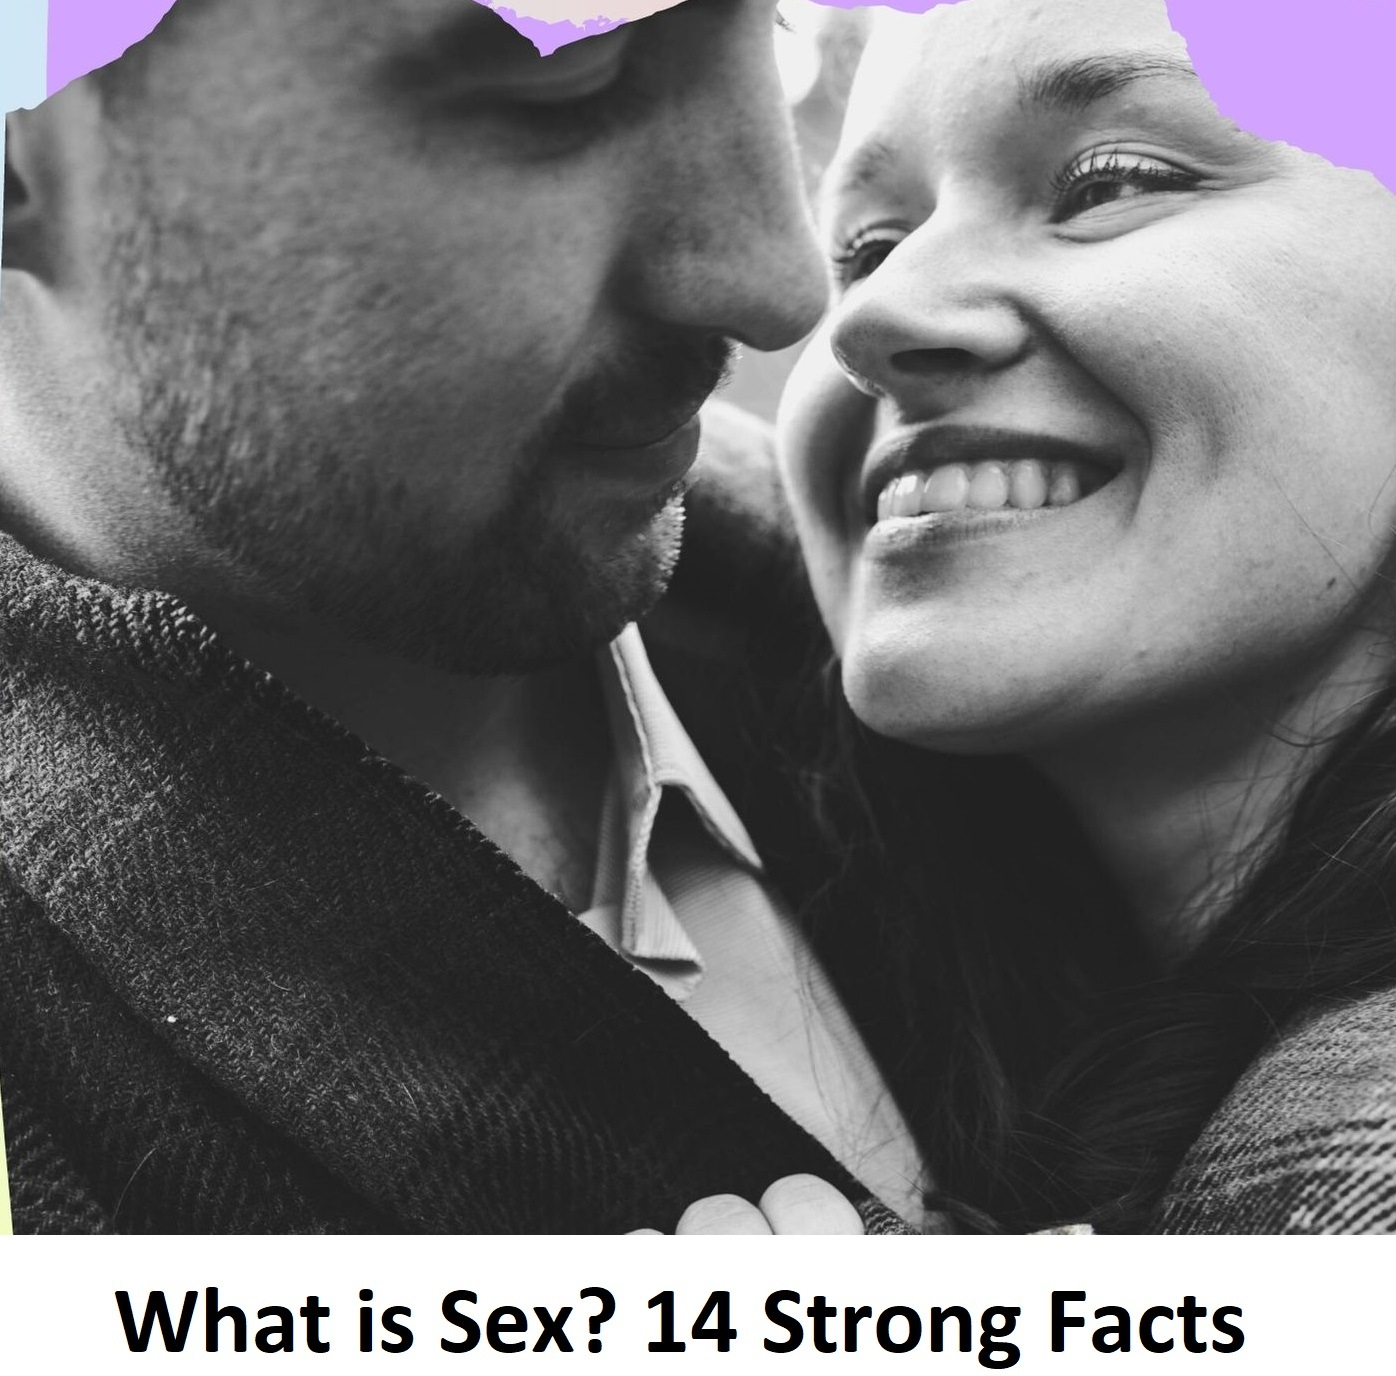 What is Sex? 14 Strong Facts